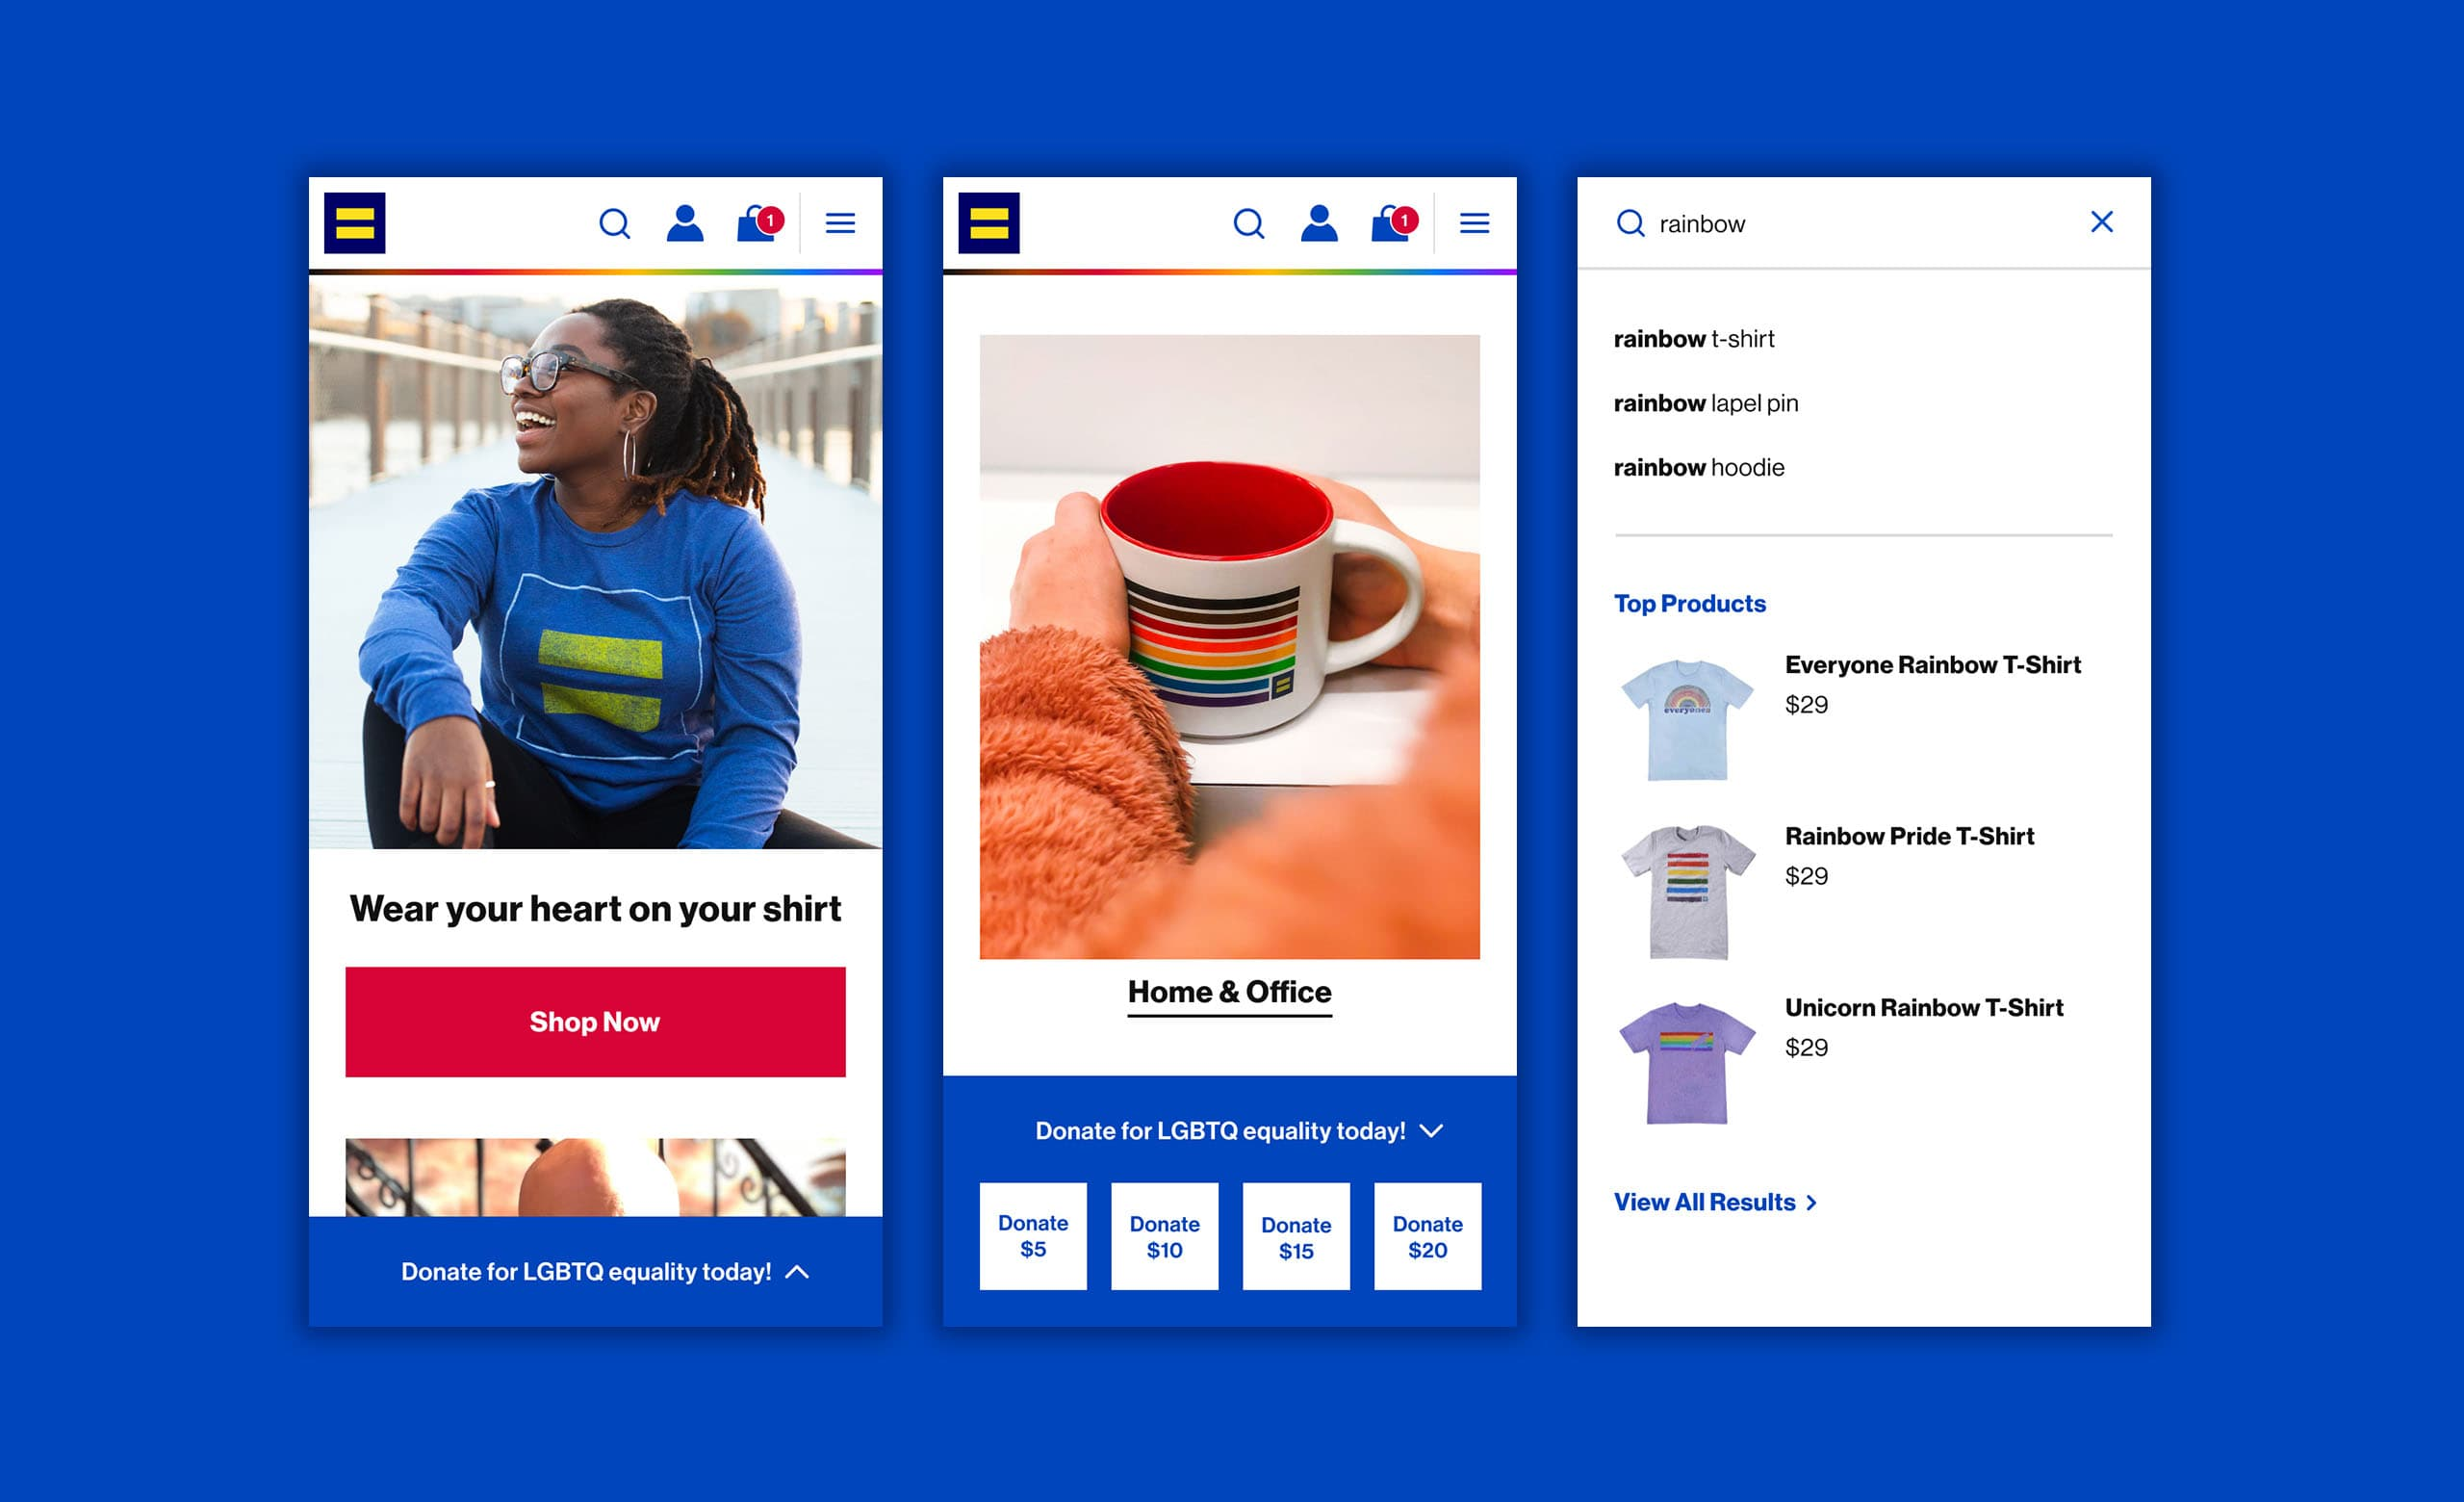 The mobile website design for the Human Rights Campaign's ecommerce merchandise store.